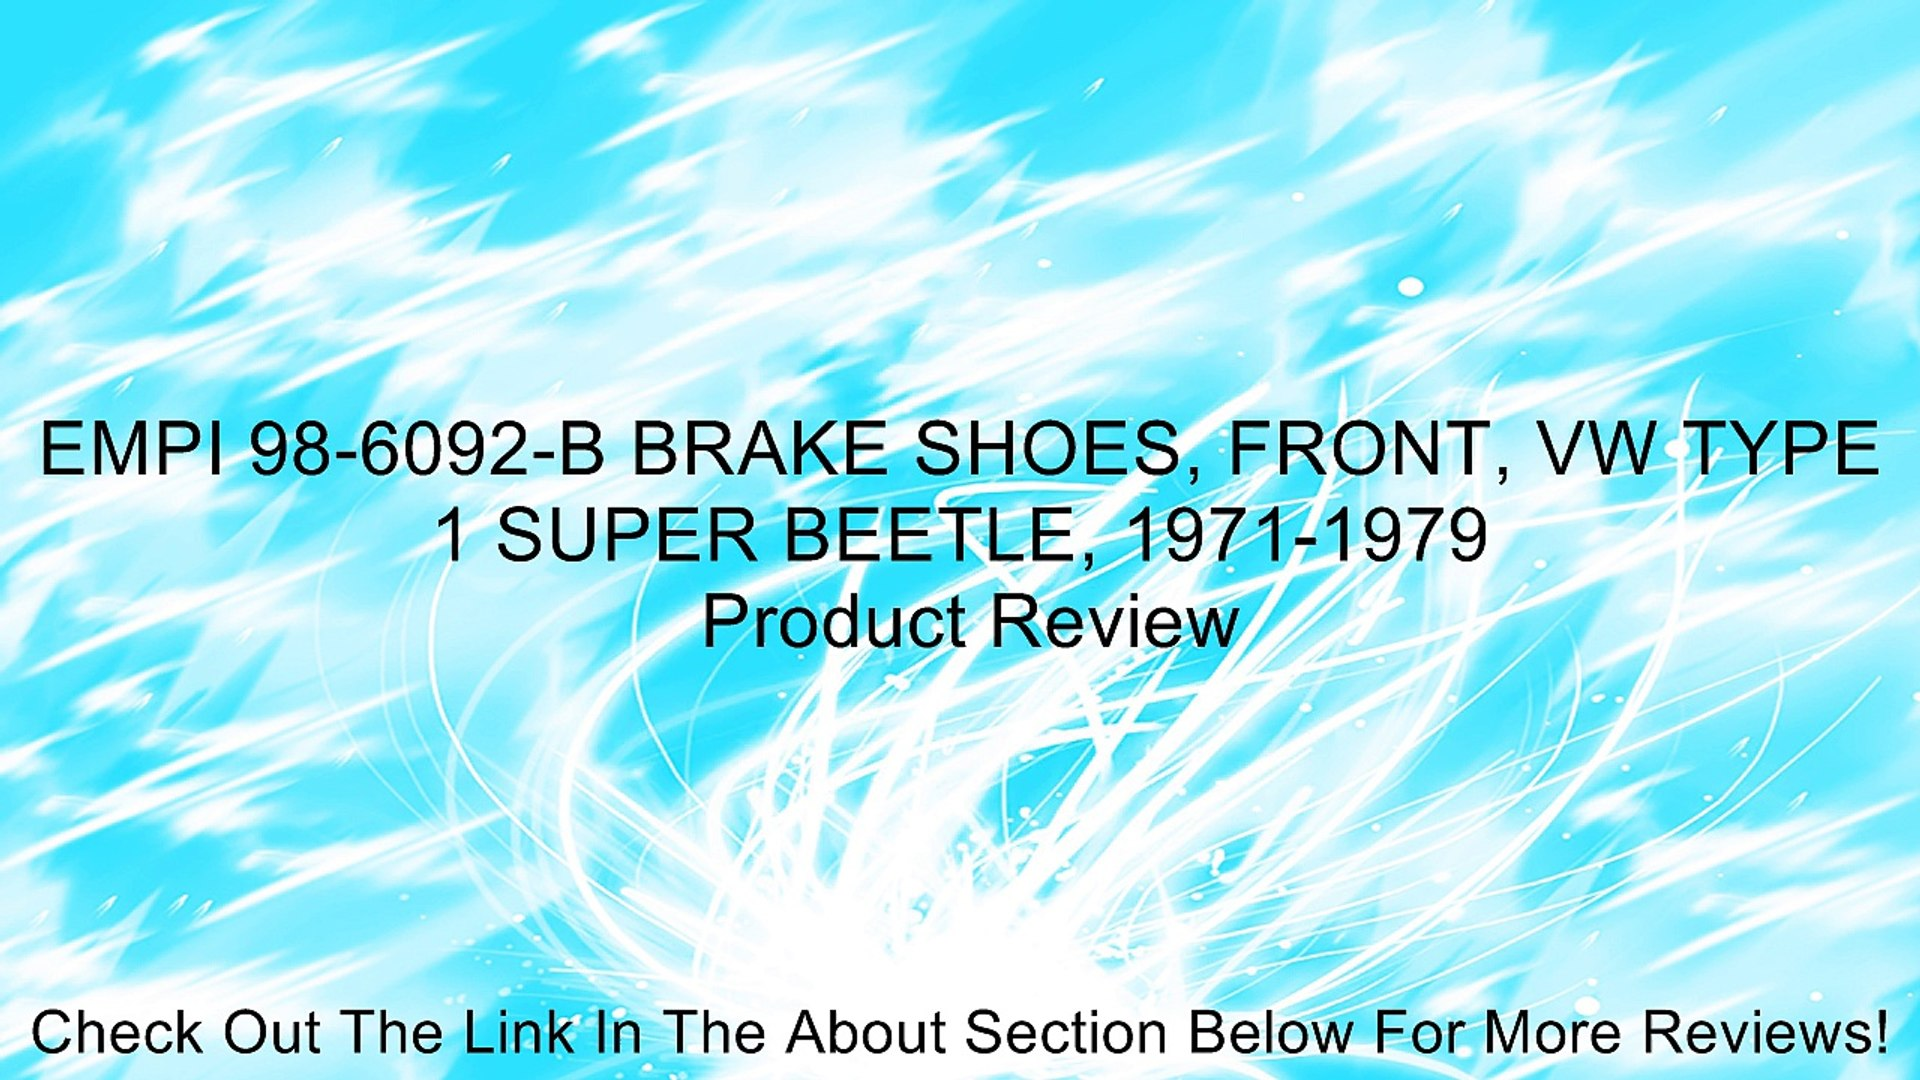 EMPI 98-6092-B BRAKE SHOES, FRONT, VW TYPE 1 SUPER BEETLE, 1971-1979 Review